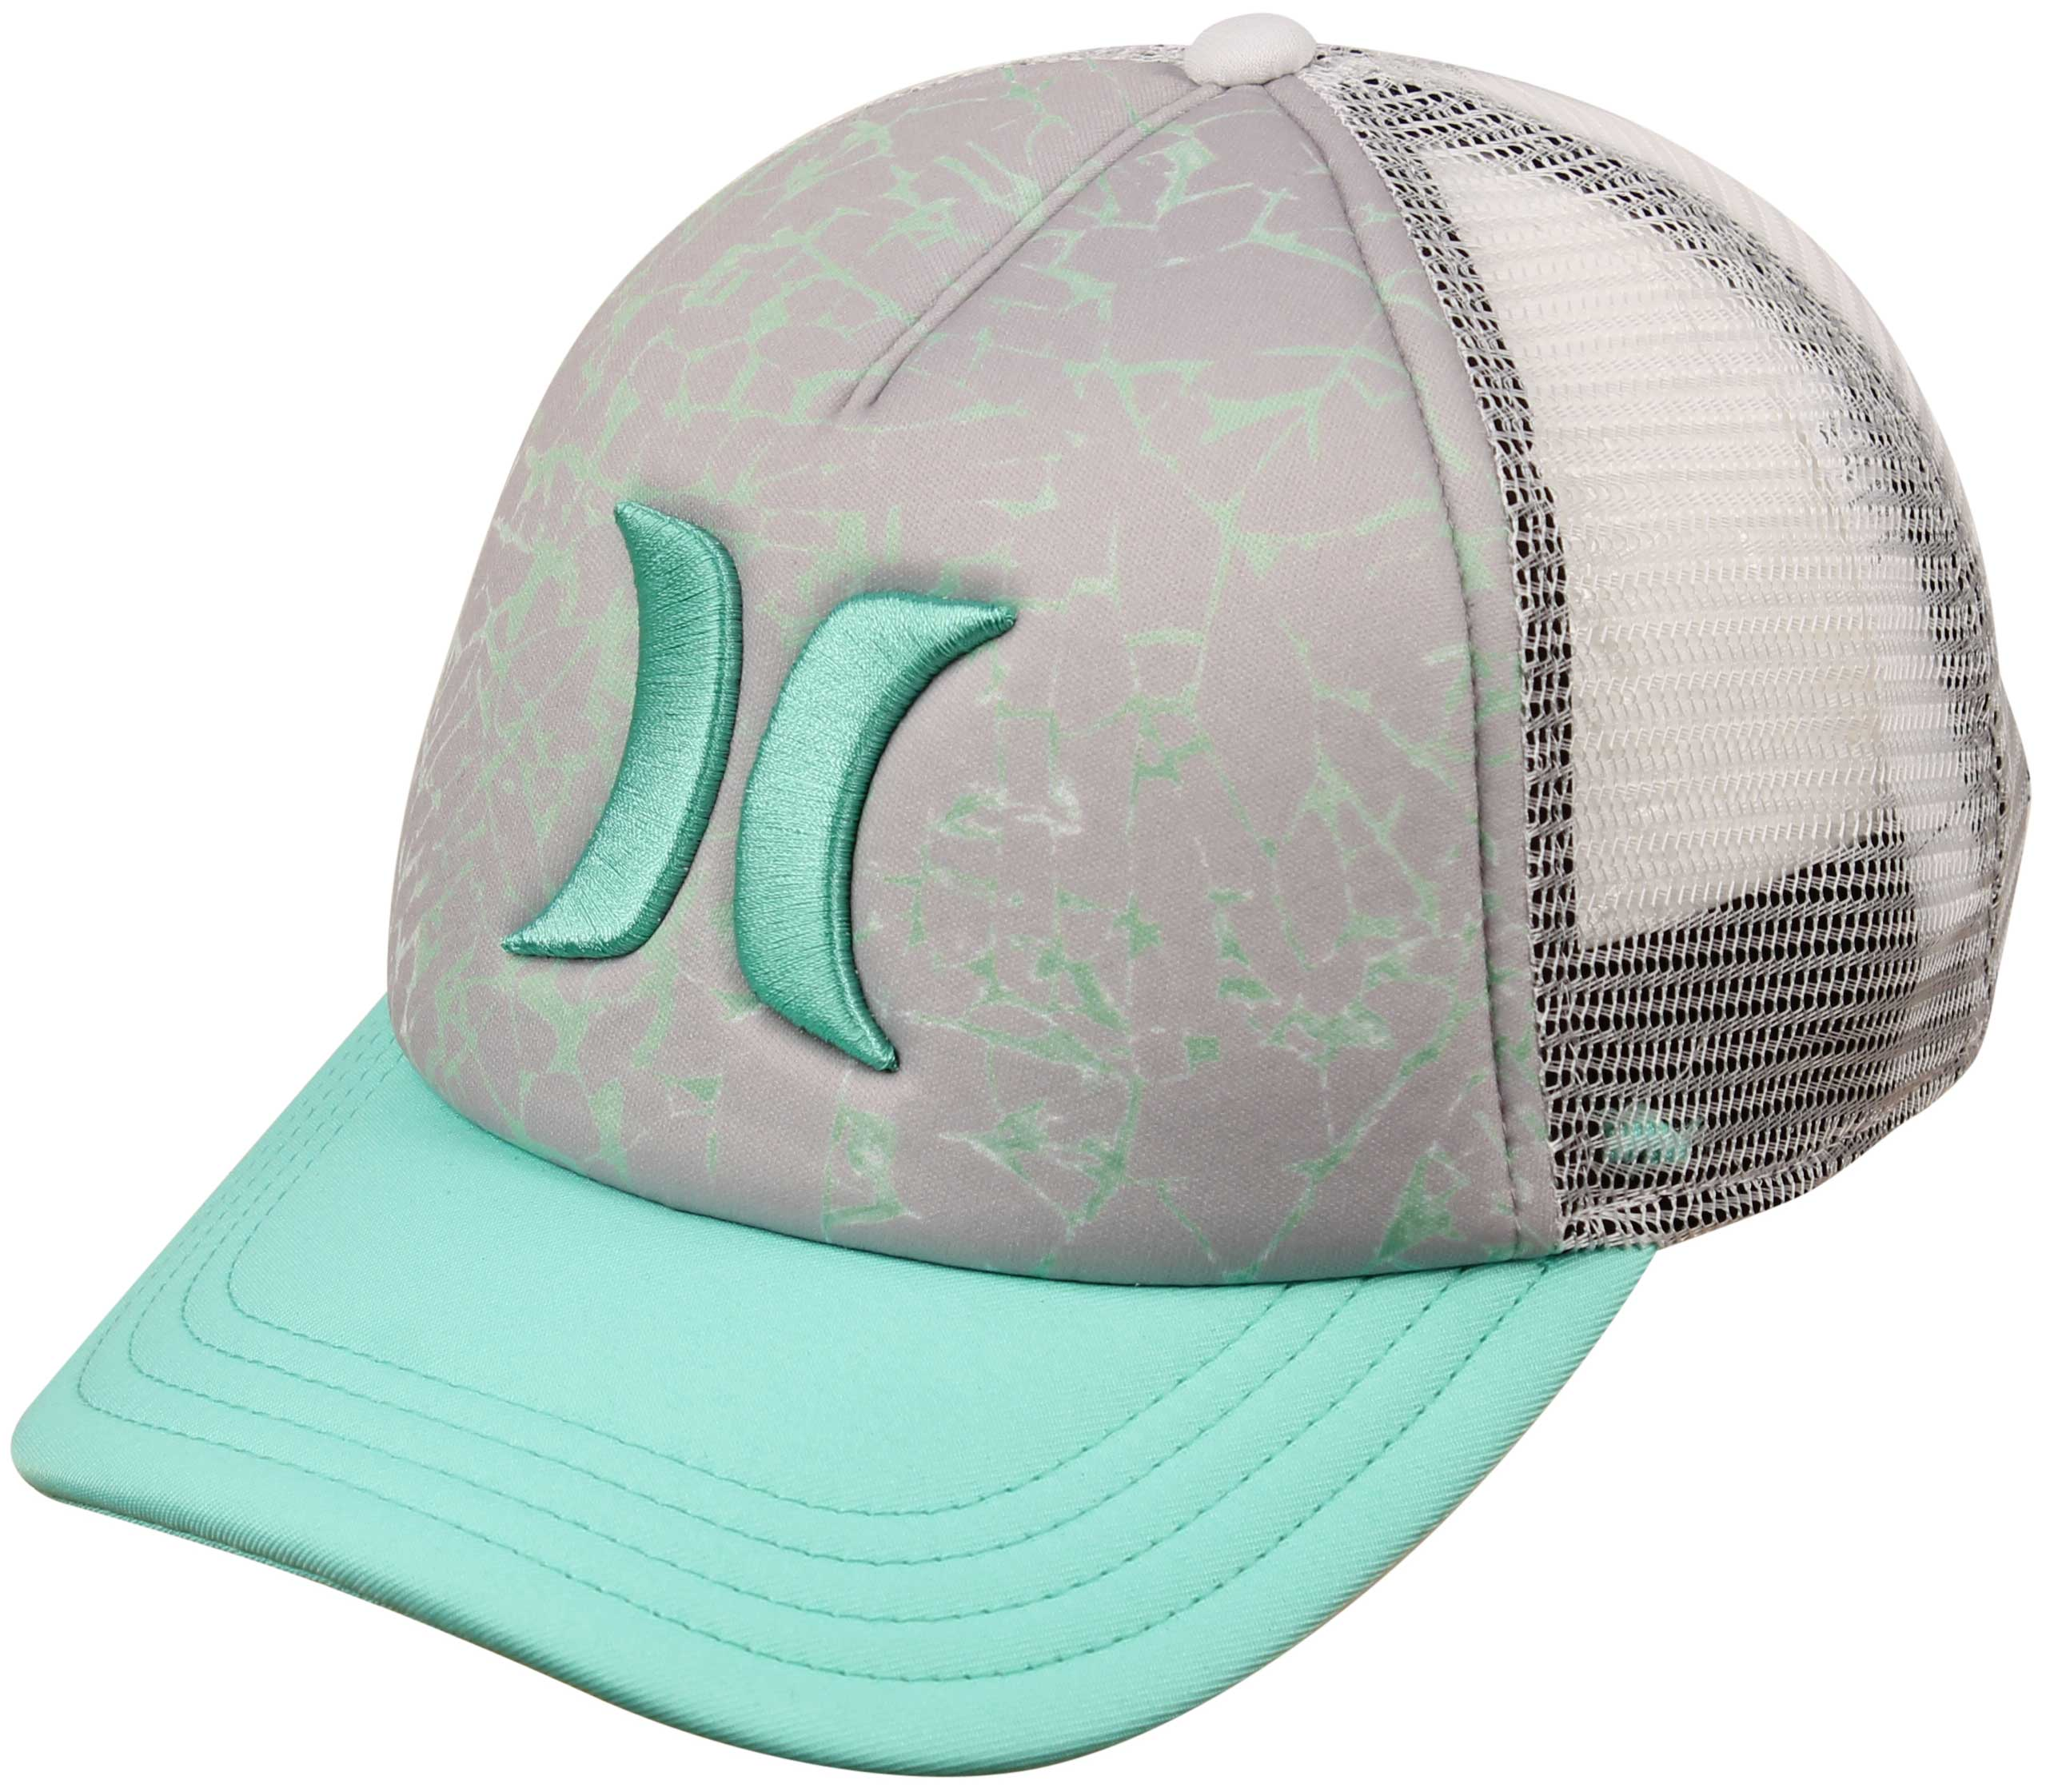 hurley one and only yc trucker hat green glow for sale